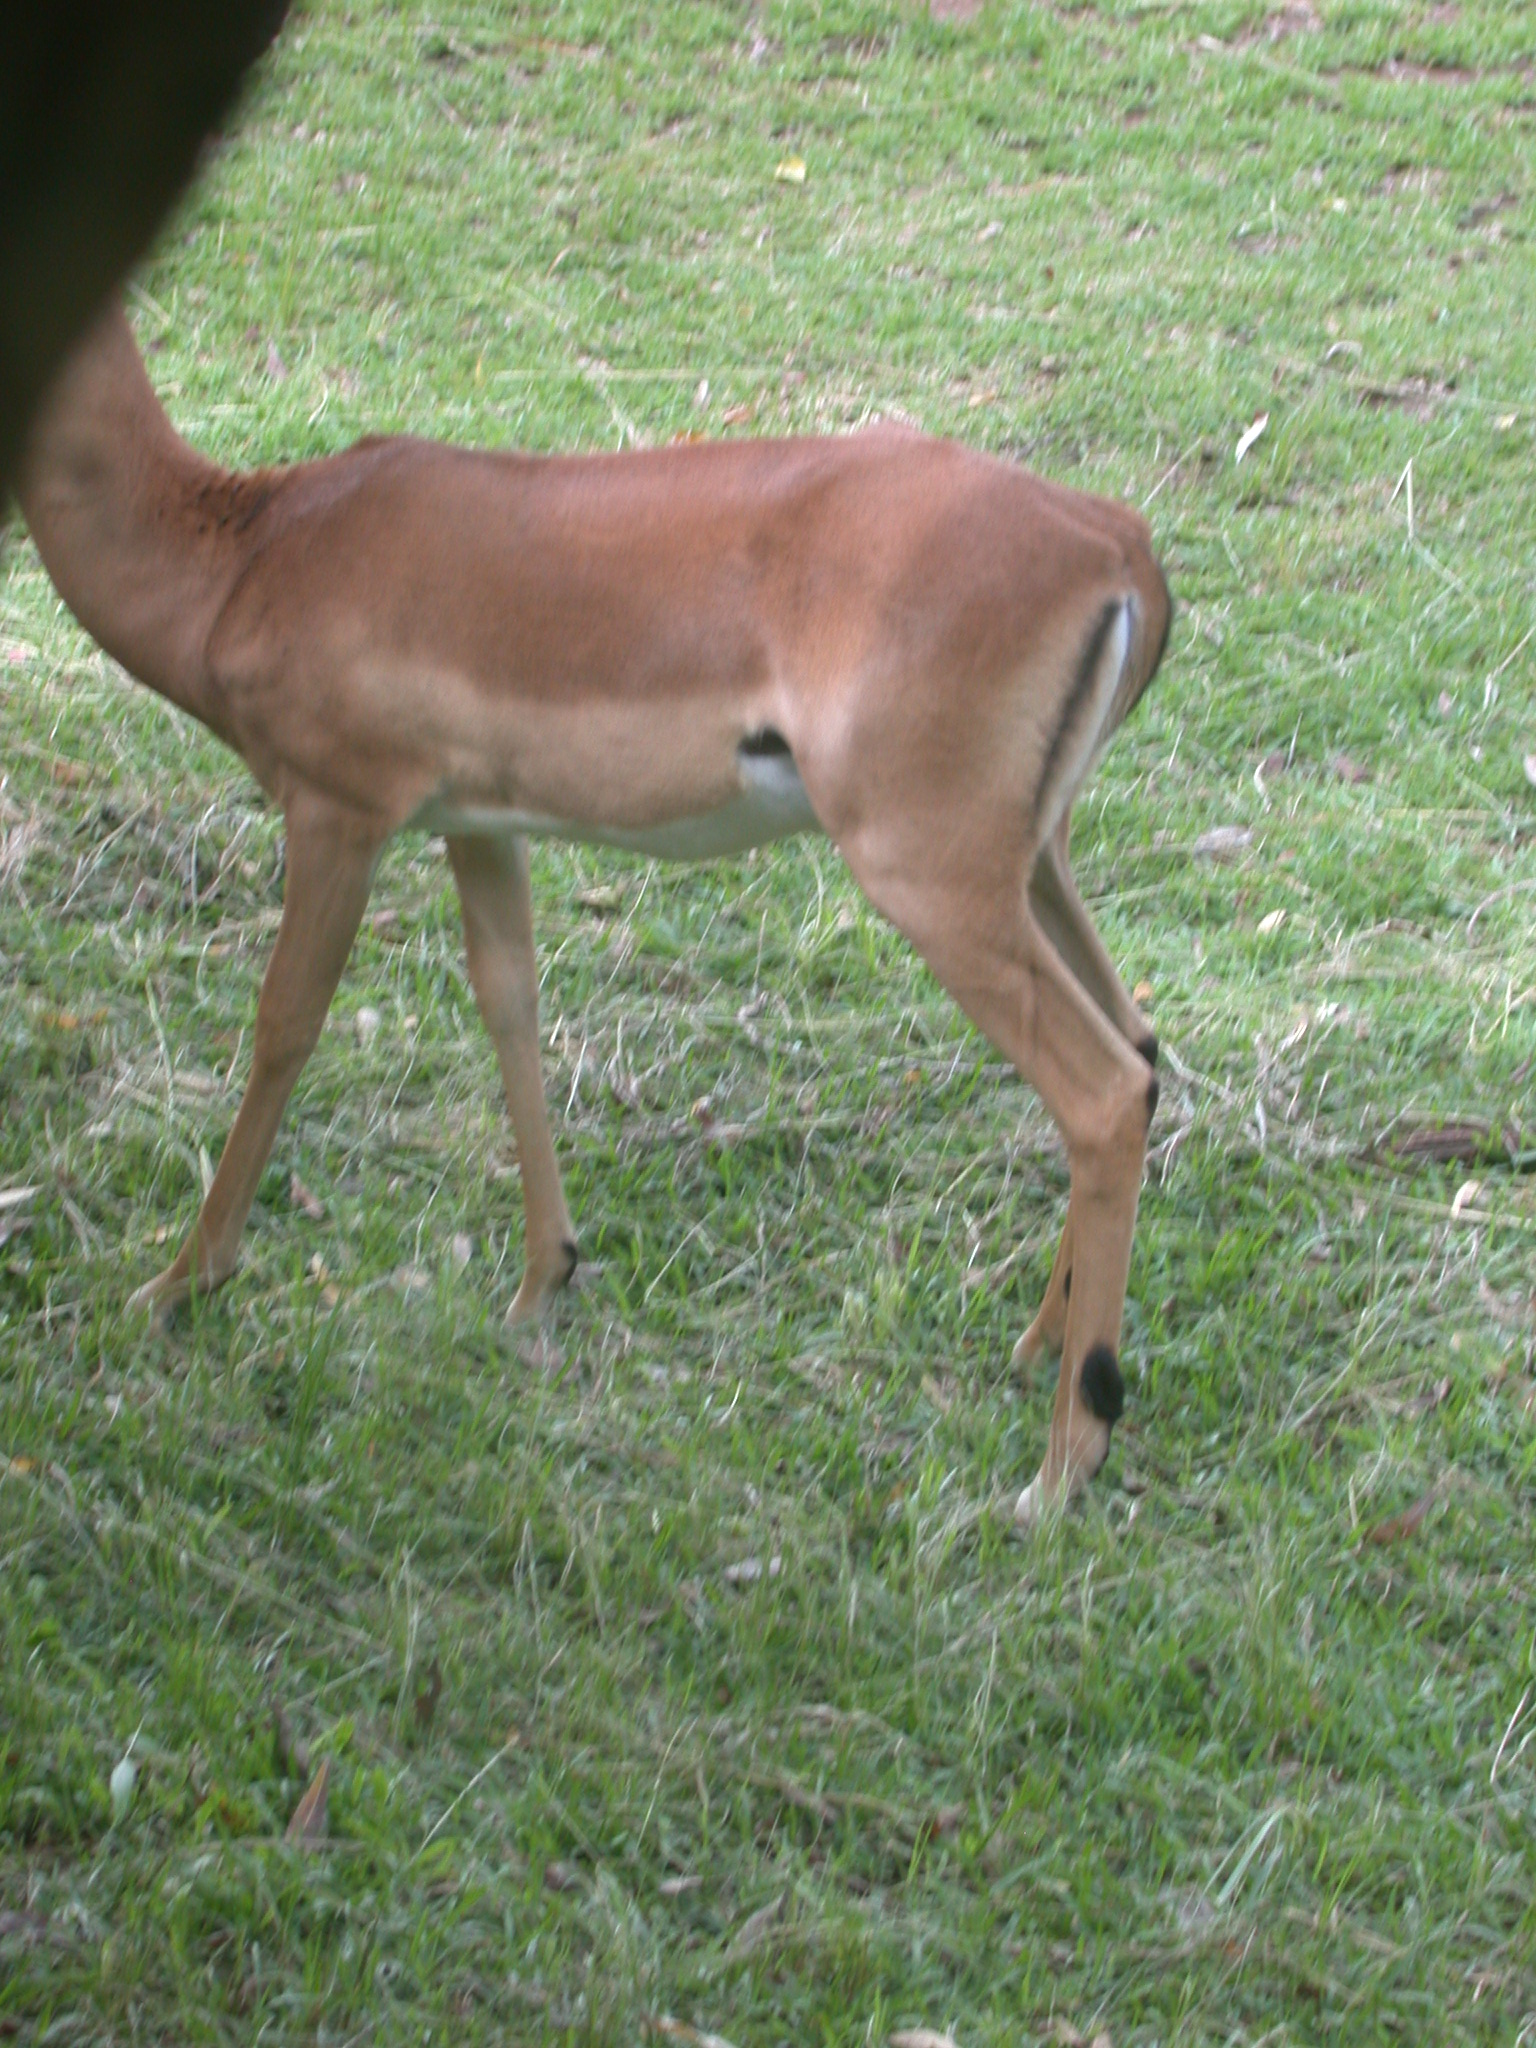 Body of Impala Grazing in Meadow Outside My Suite at the Ancient City Lodge, Great Zimbabwe, Outside Masvingo, Zimbabwe